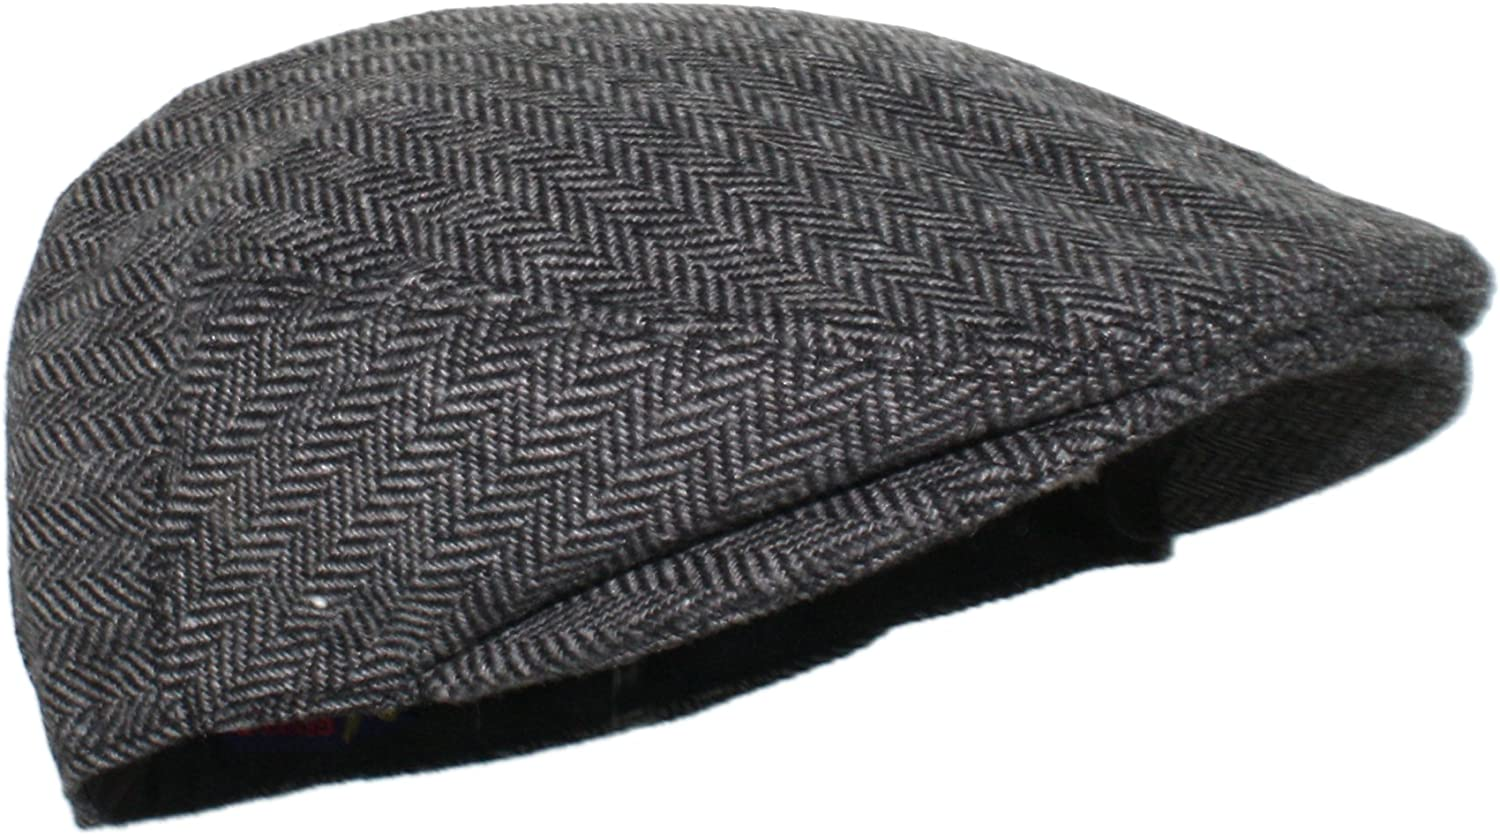 Ted & Jack - Street Easy Herringbone Driving Cap with Quilted Lining